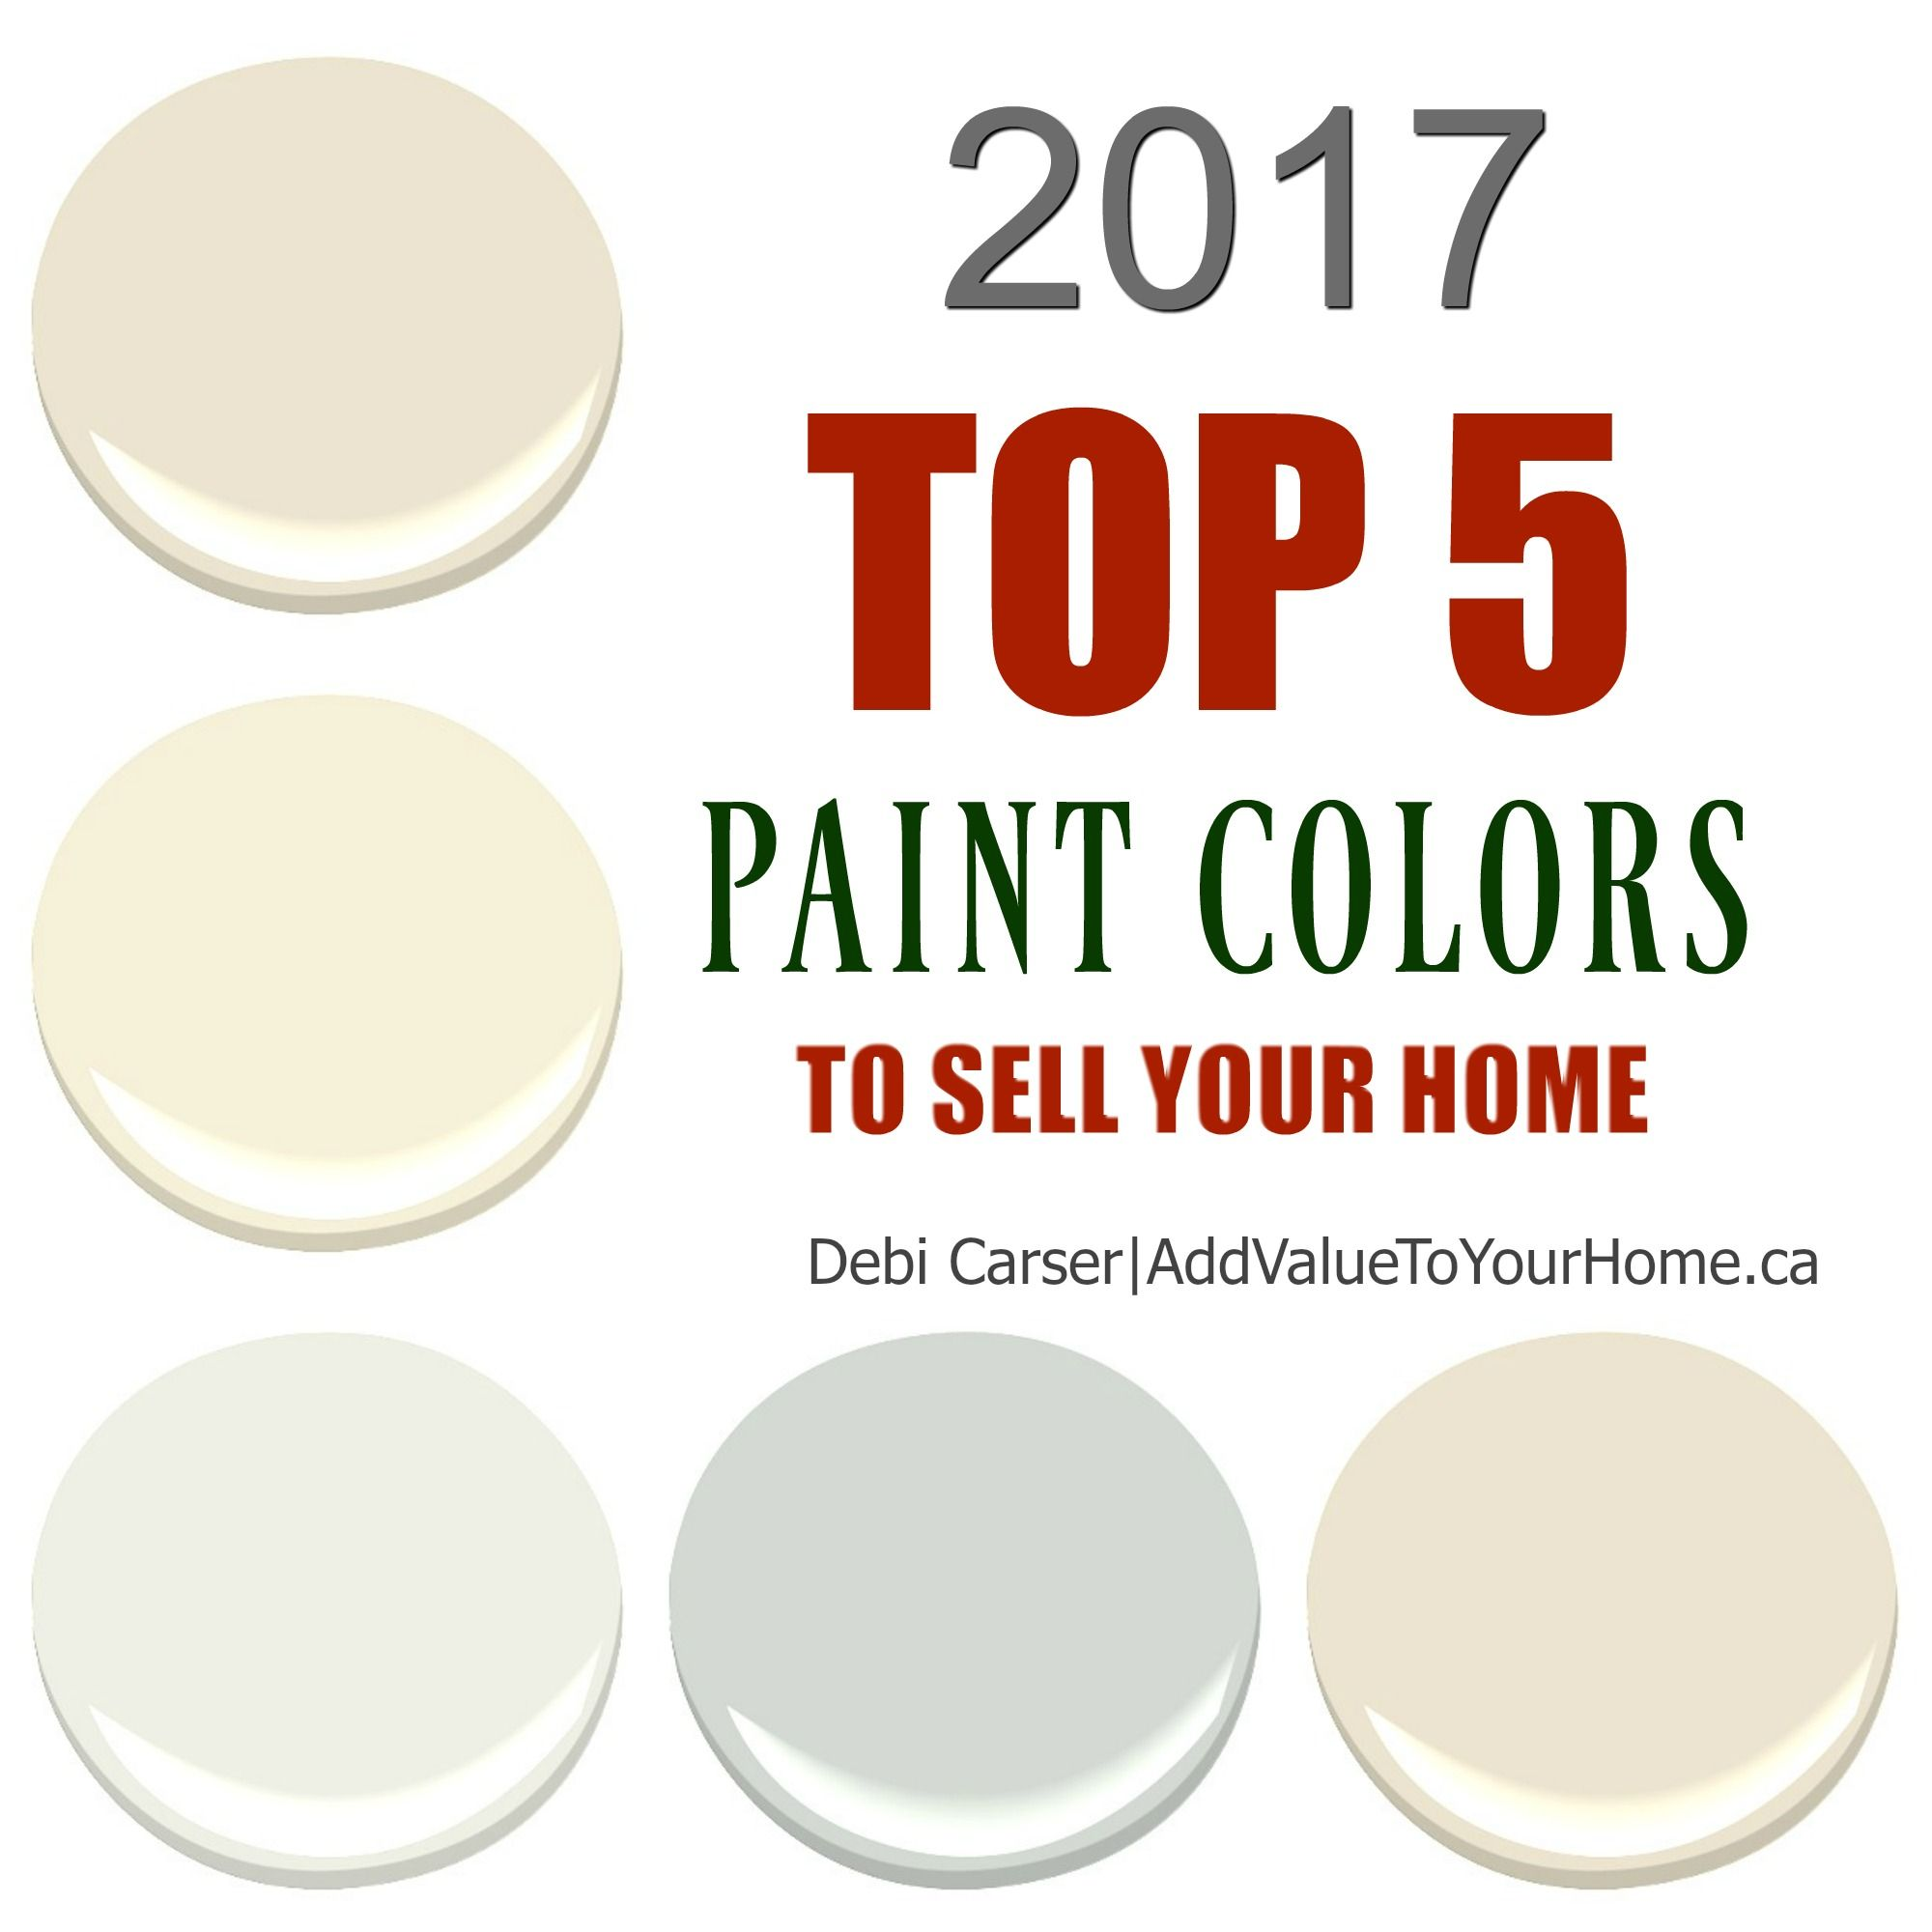 2017 top 5 paint colors to sell your home. find out what colors